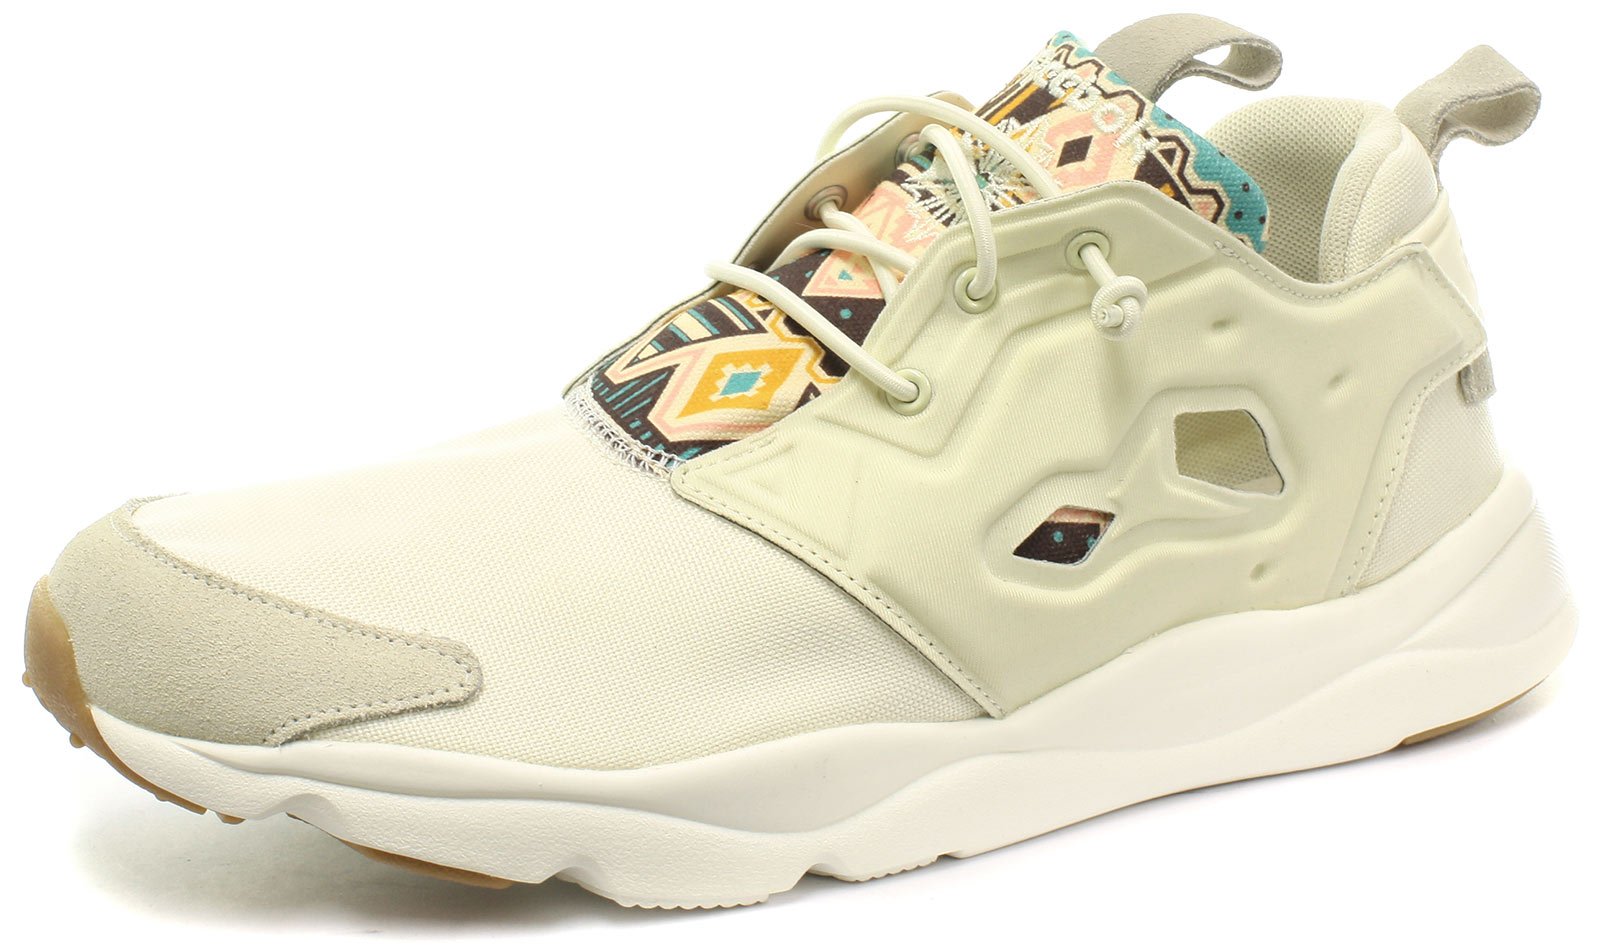 751cace2ef9406 NEW REEBOK CLASSIC Furylite GP Mens Trainers ALL SIZES - EUR 21